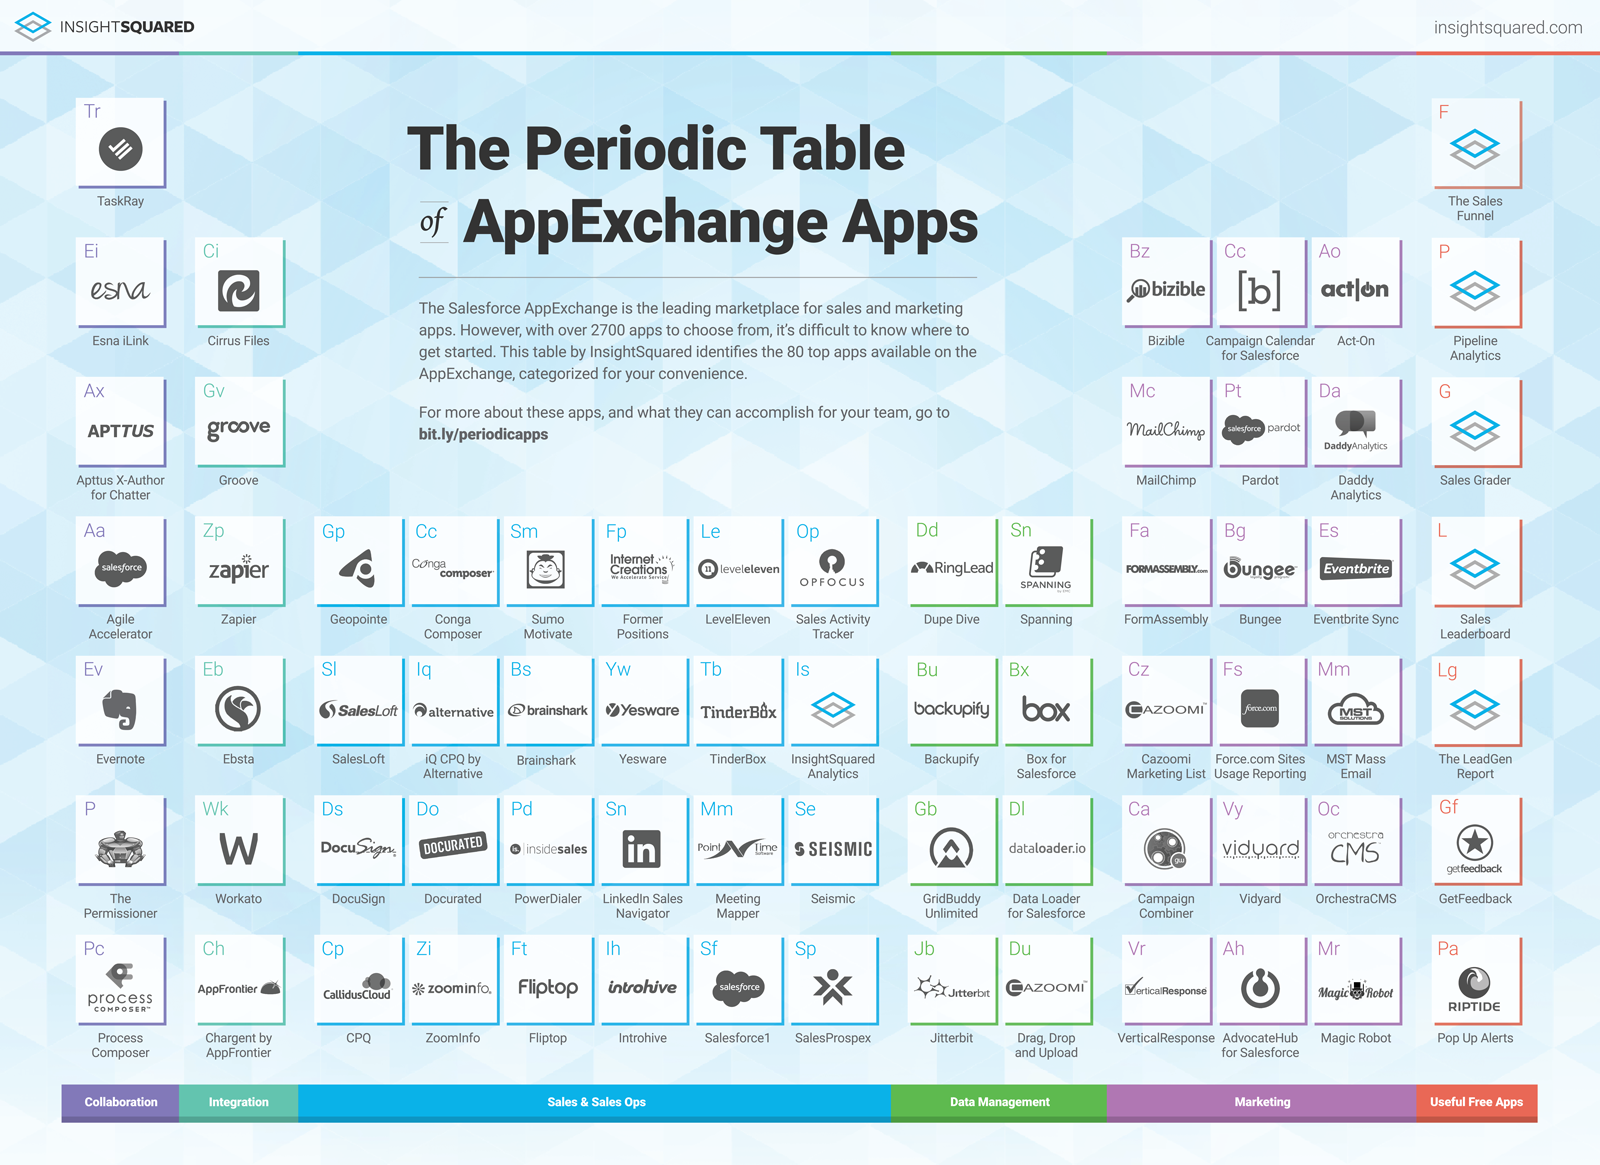 The science of salesforce success spanning youll see the elements of collaboration and integration on insight squareds periodic table too where theyre among the categories of apps for salesforce urtaz Choice Image